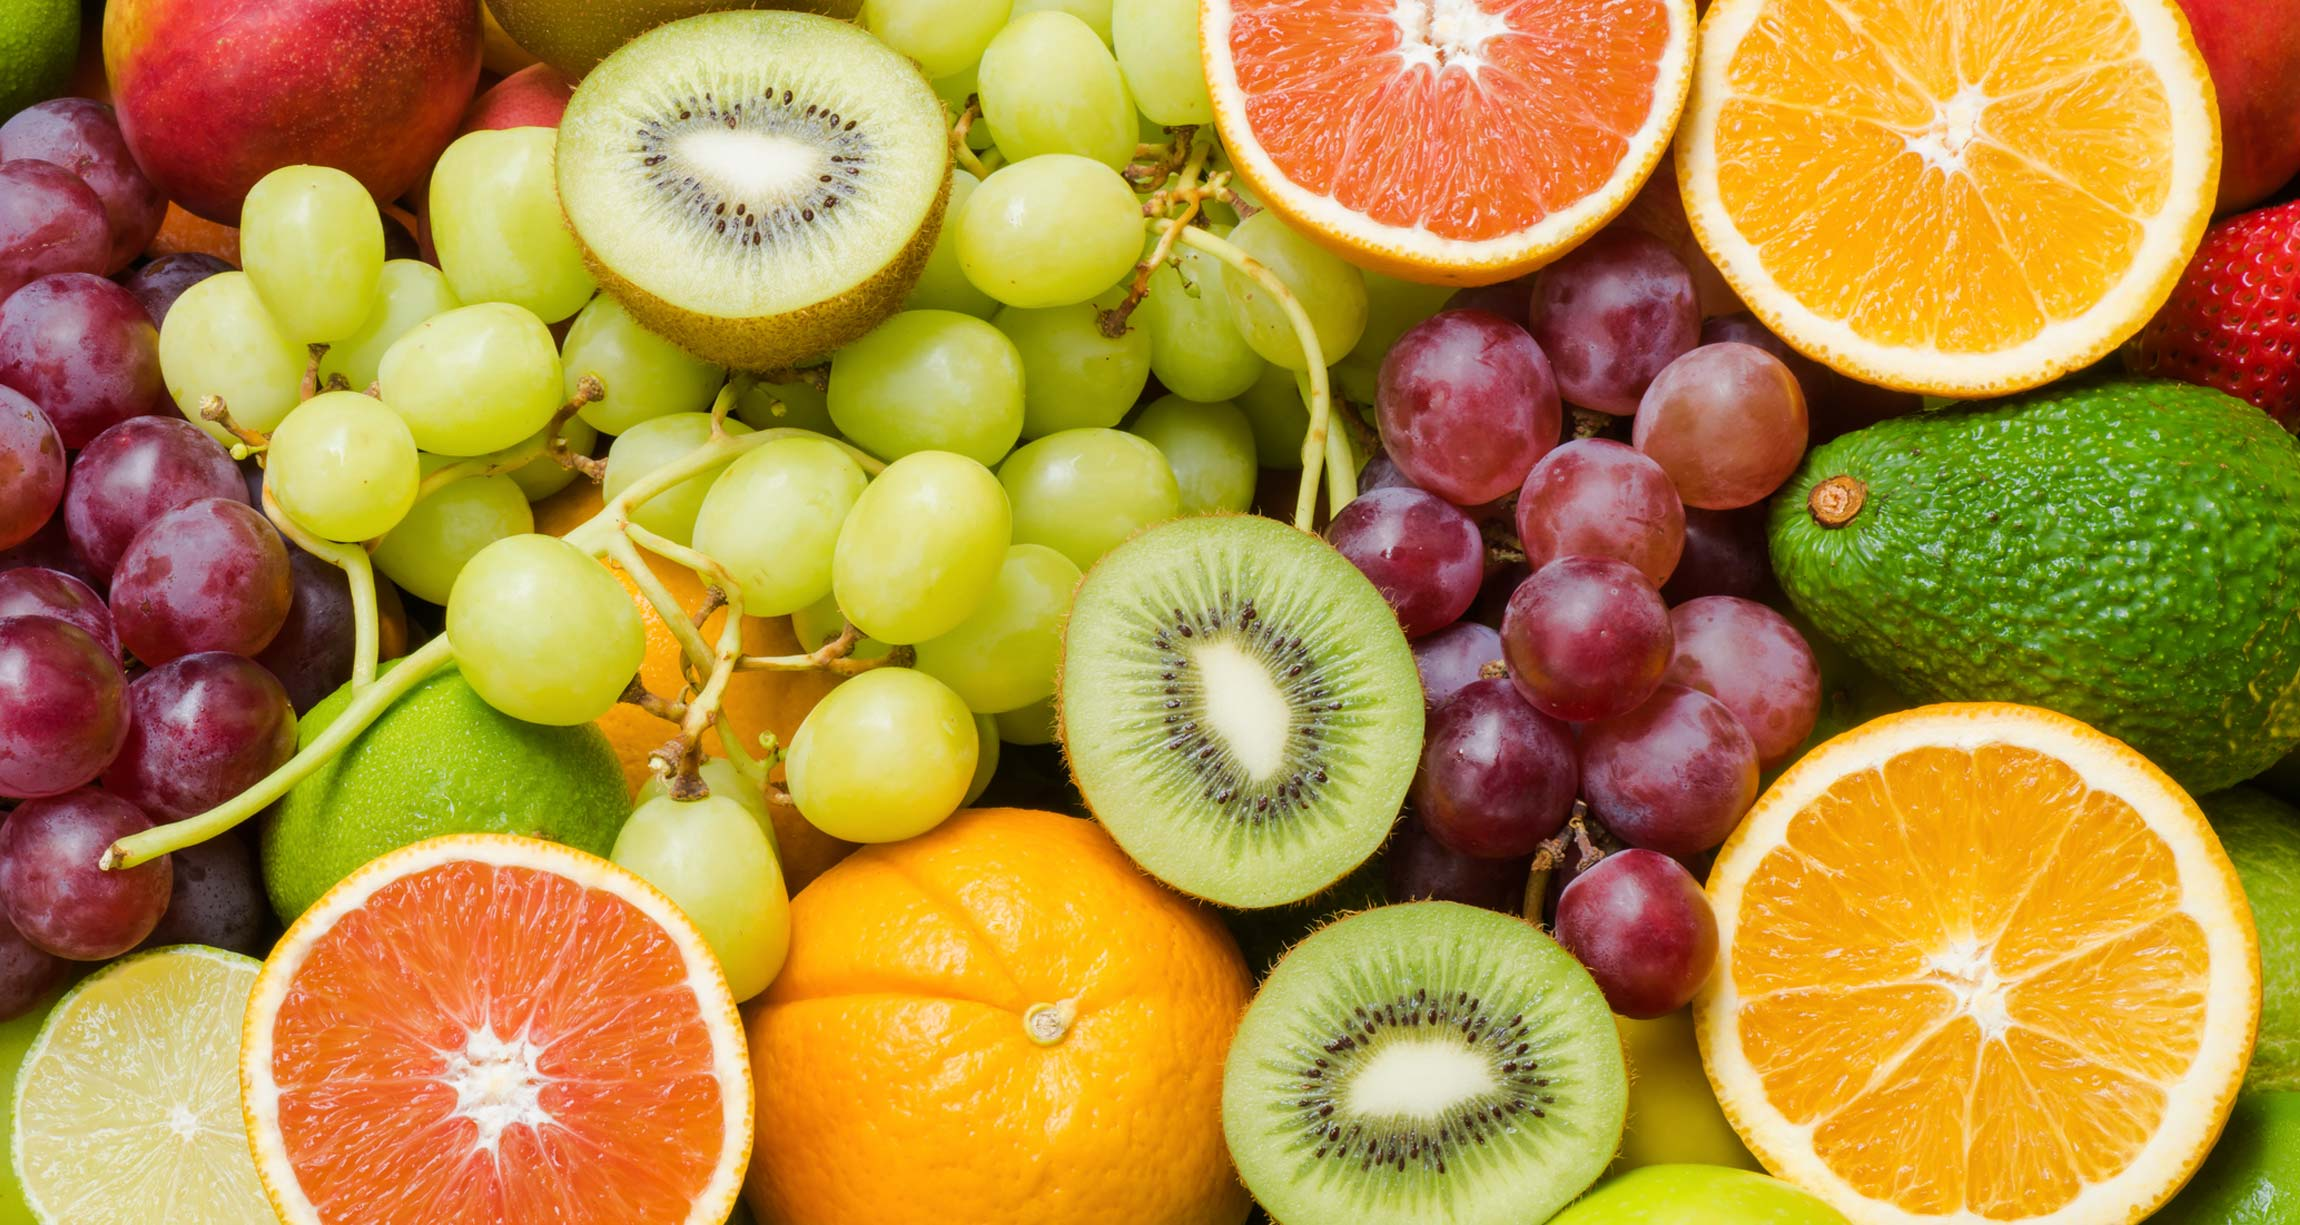 Fruit Has Fantastic Health Benefits, But Can You Eat Too Much Fruit?